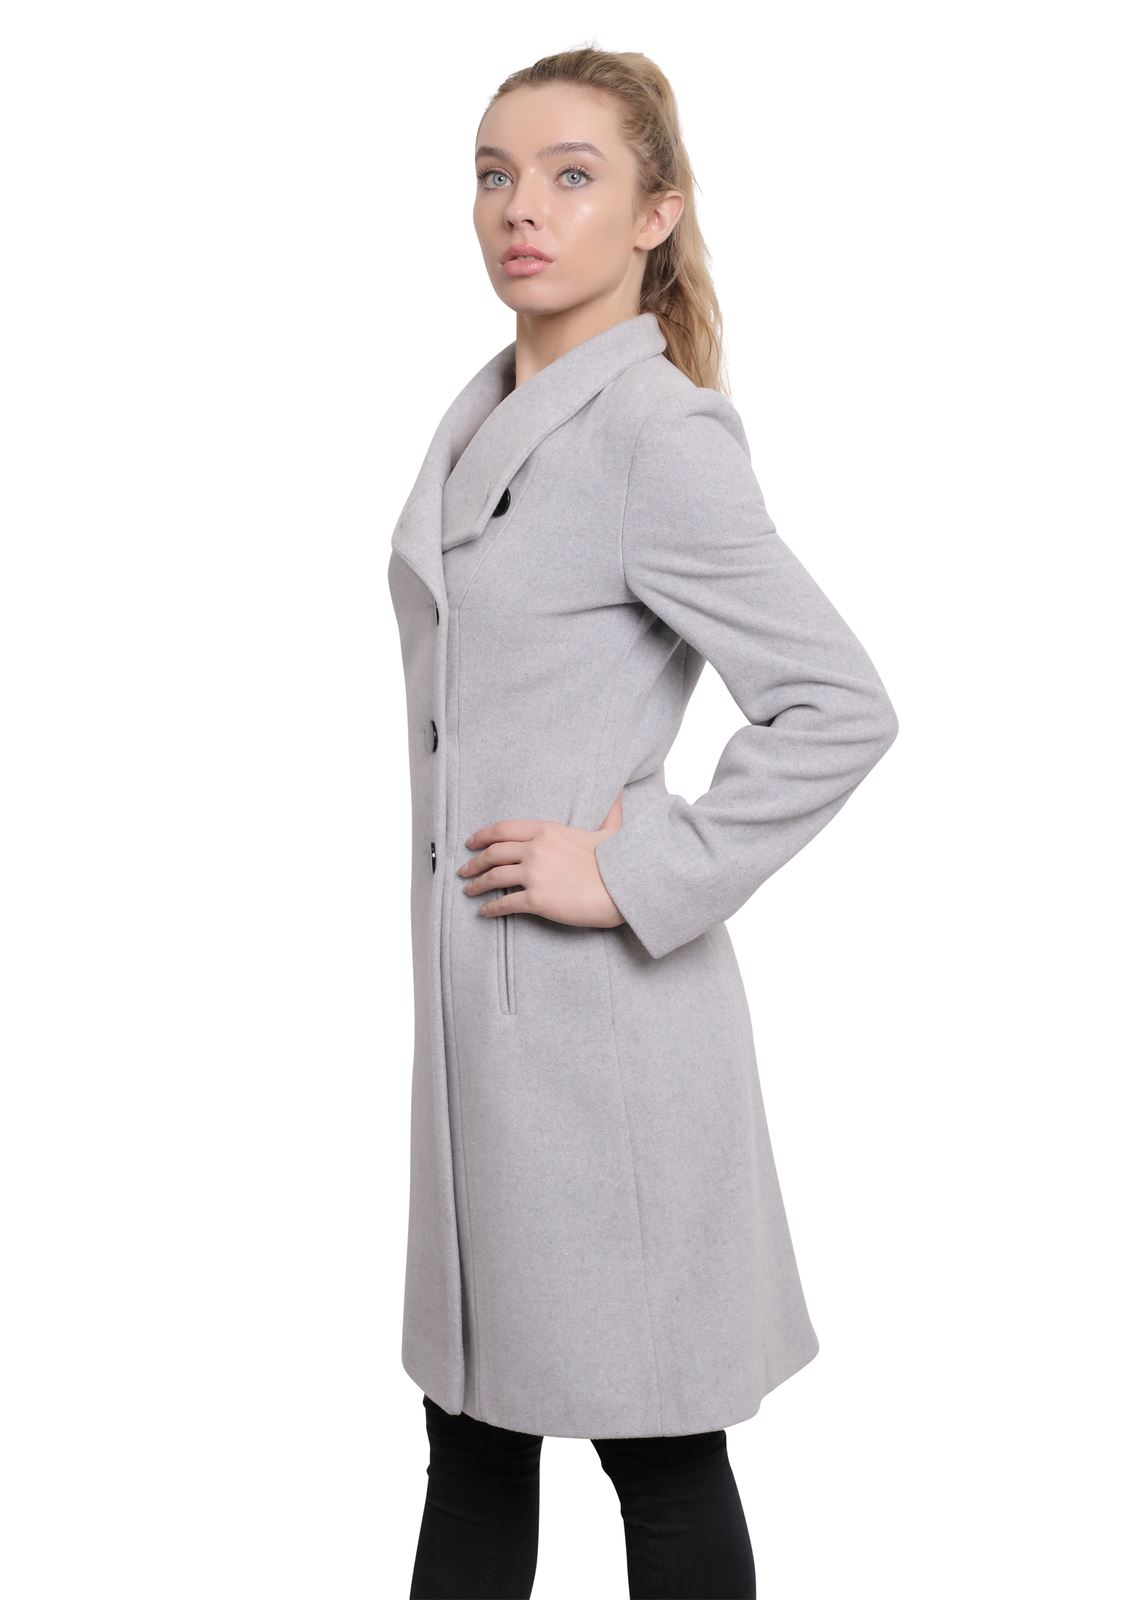 De-La-Creme-Womens-Funnel-Neck-Wool-amp-Cashmere-Blend-Keep-It-Simple-Coat thumbnail 18